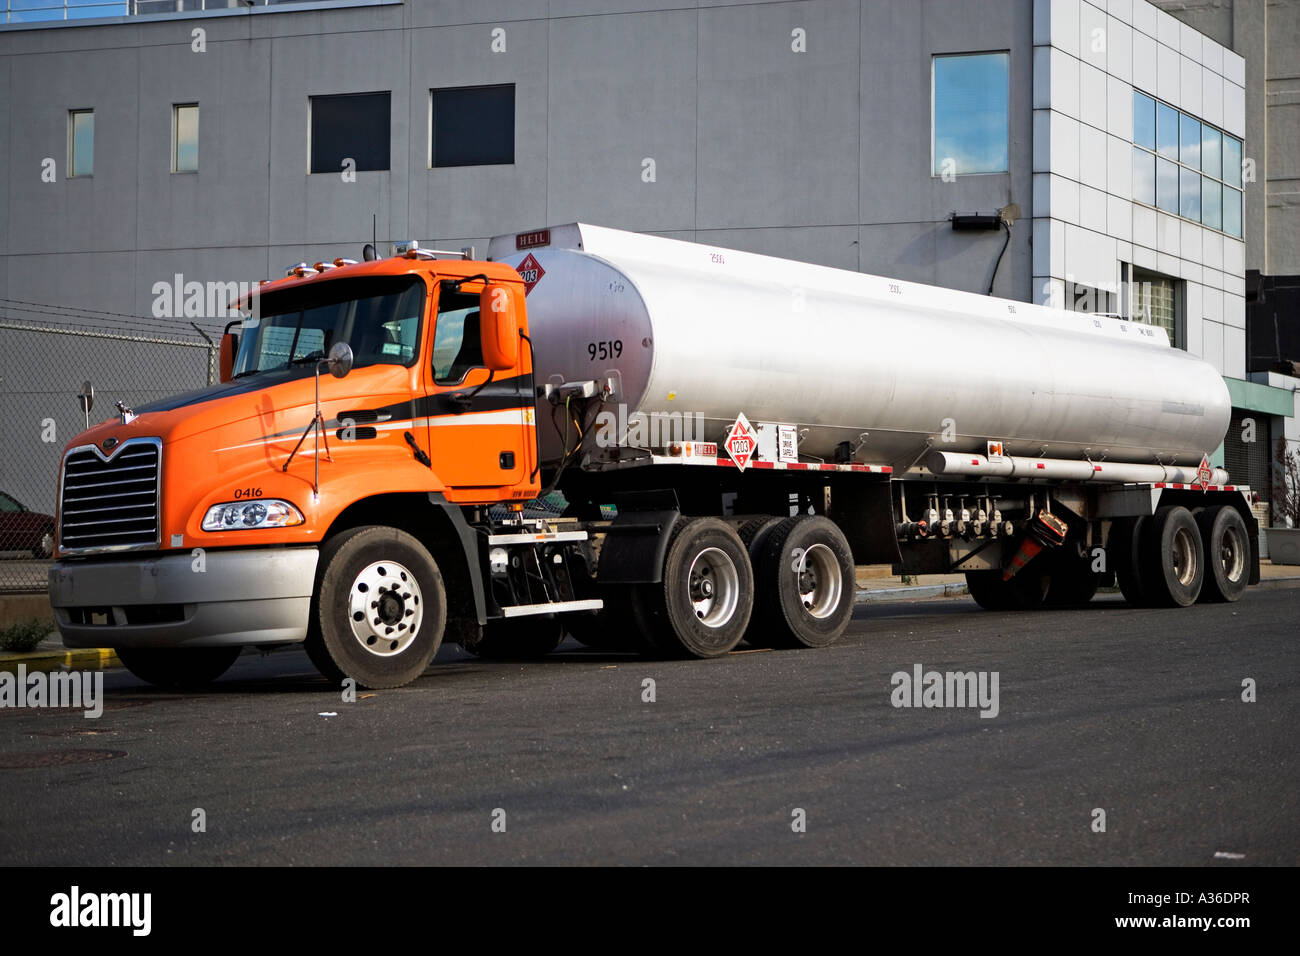 Oil Tanker Fuel Gas Petrol Oil Transportation Truck Delivery Stock Photo Alamy